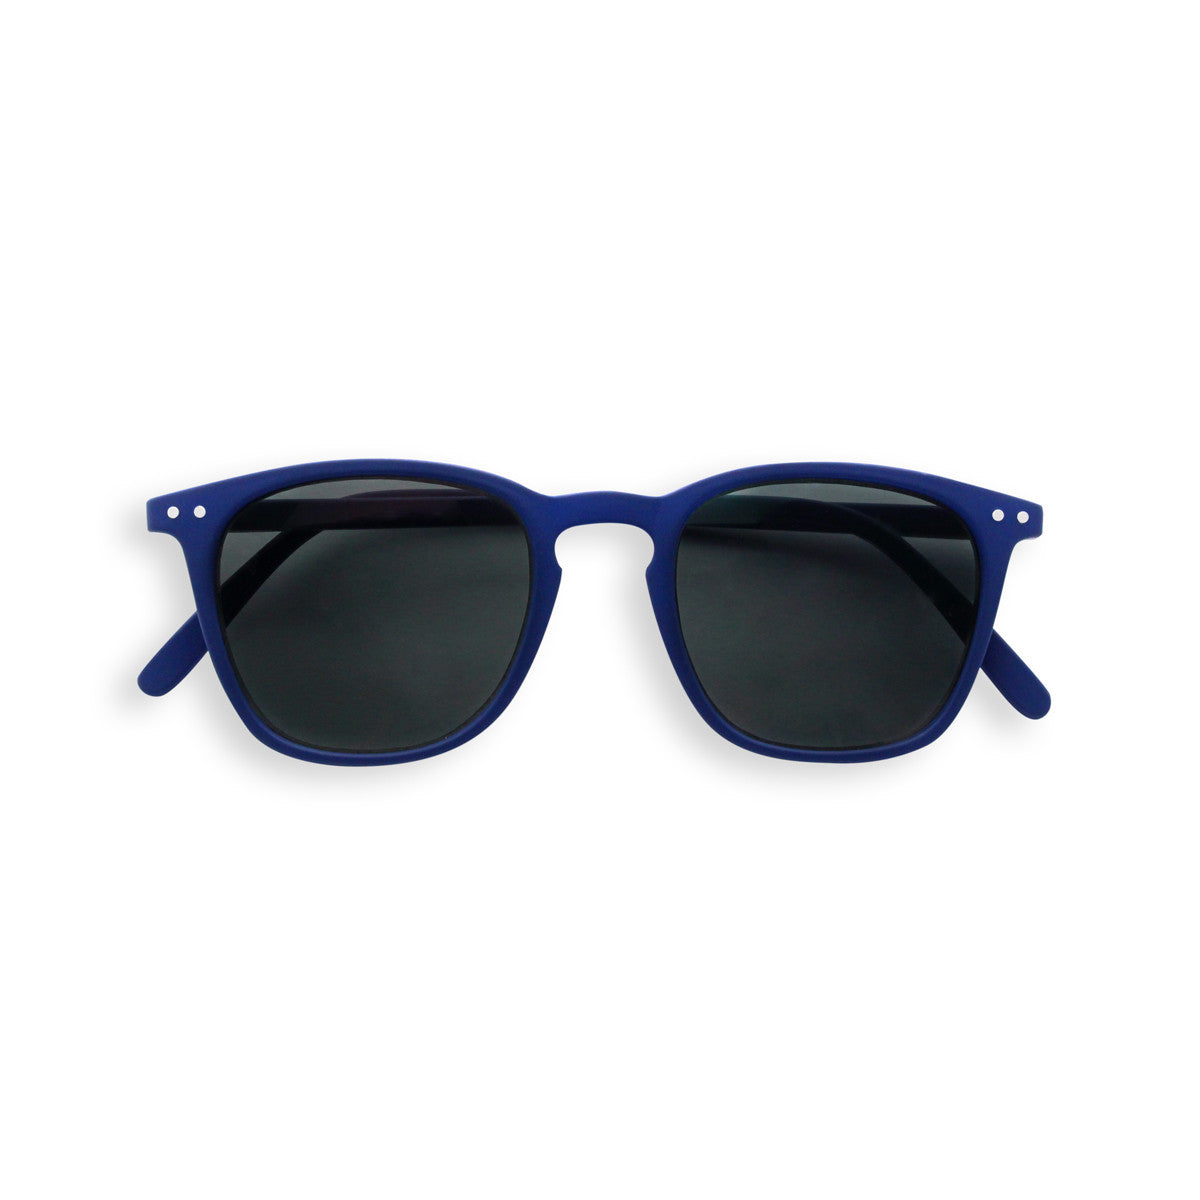 JUNIOR KIDS SUNGLASSES / 3-10 YEARS / STYLE E / NAVY BLUE